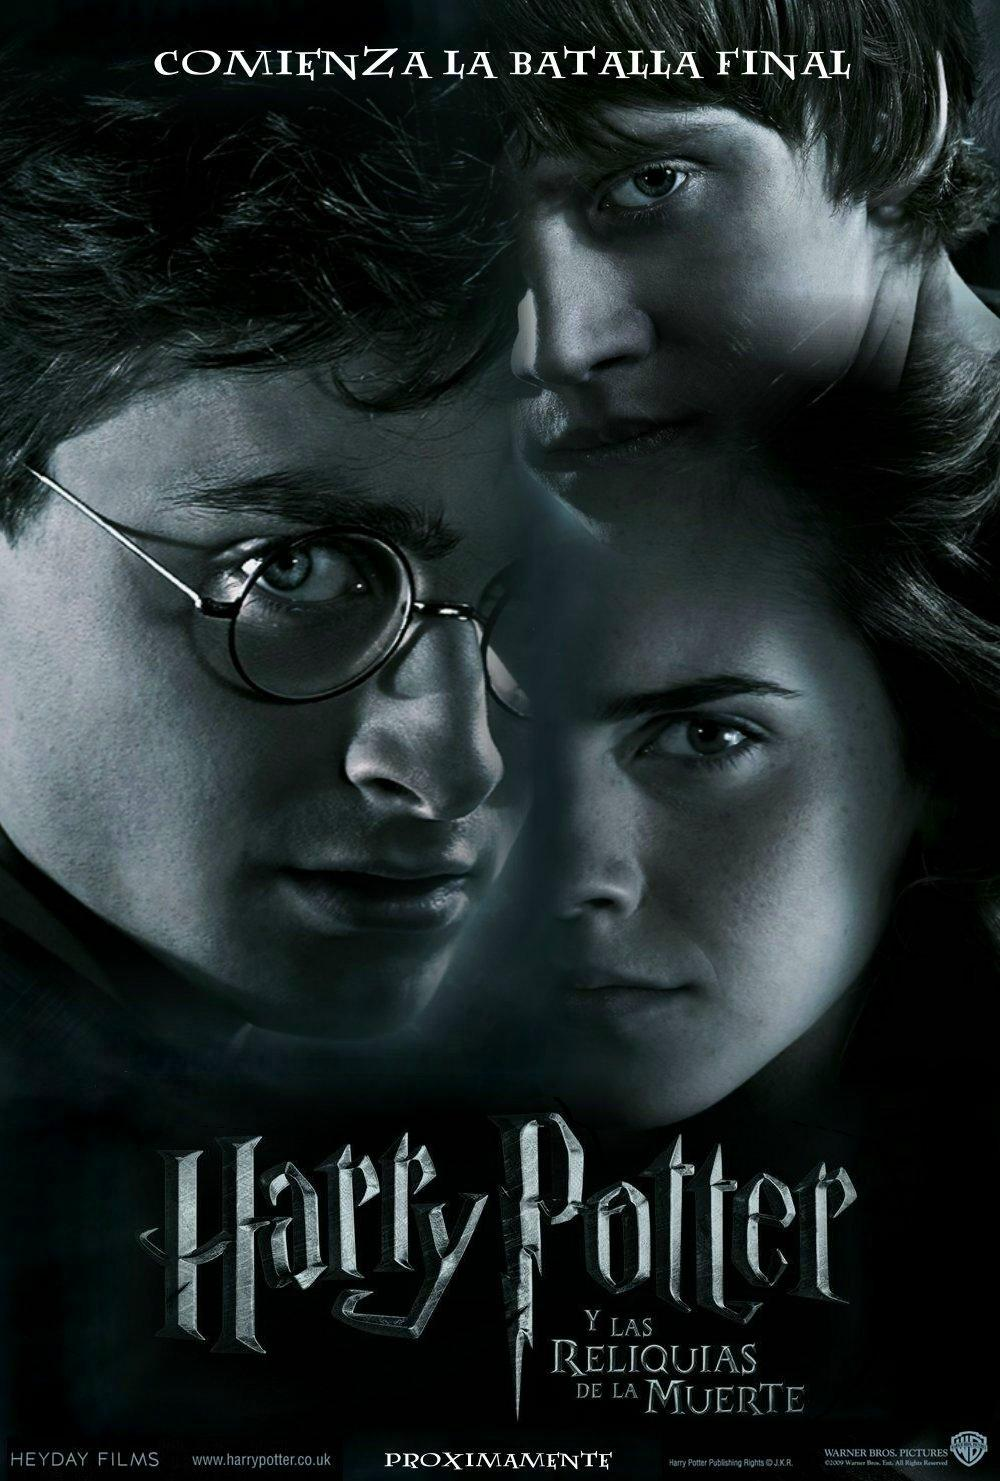 Harry Potter y las Reliquias de la Muerte / Harry Potter 7 parte 1 (2010)